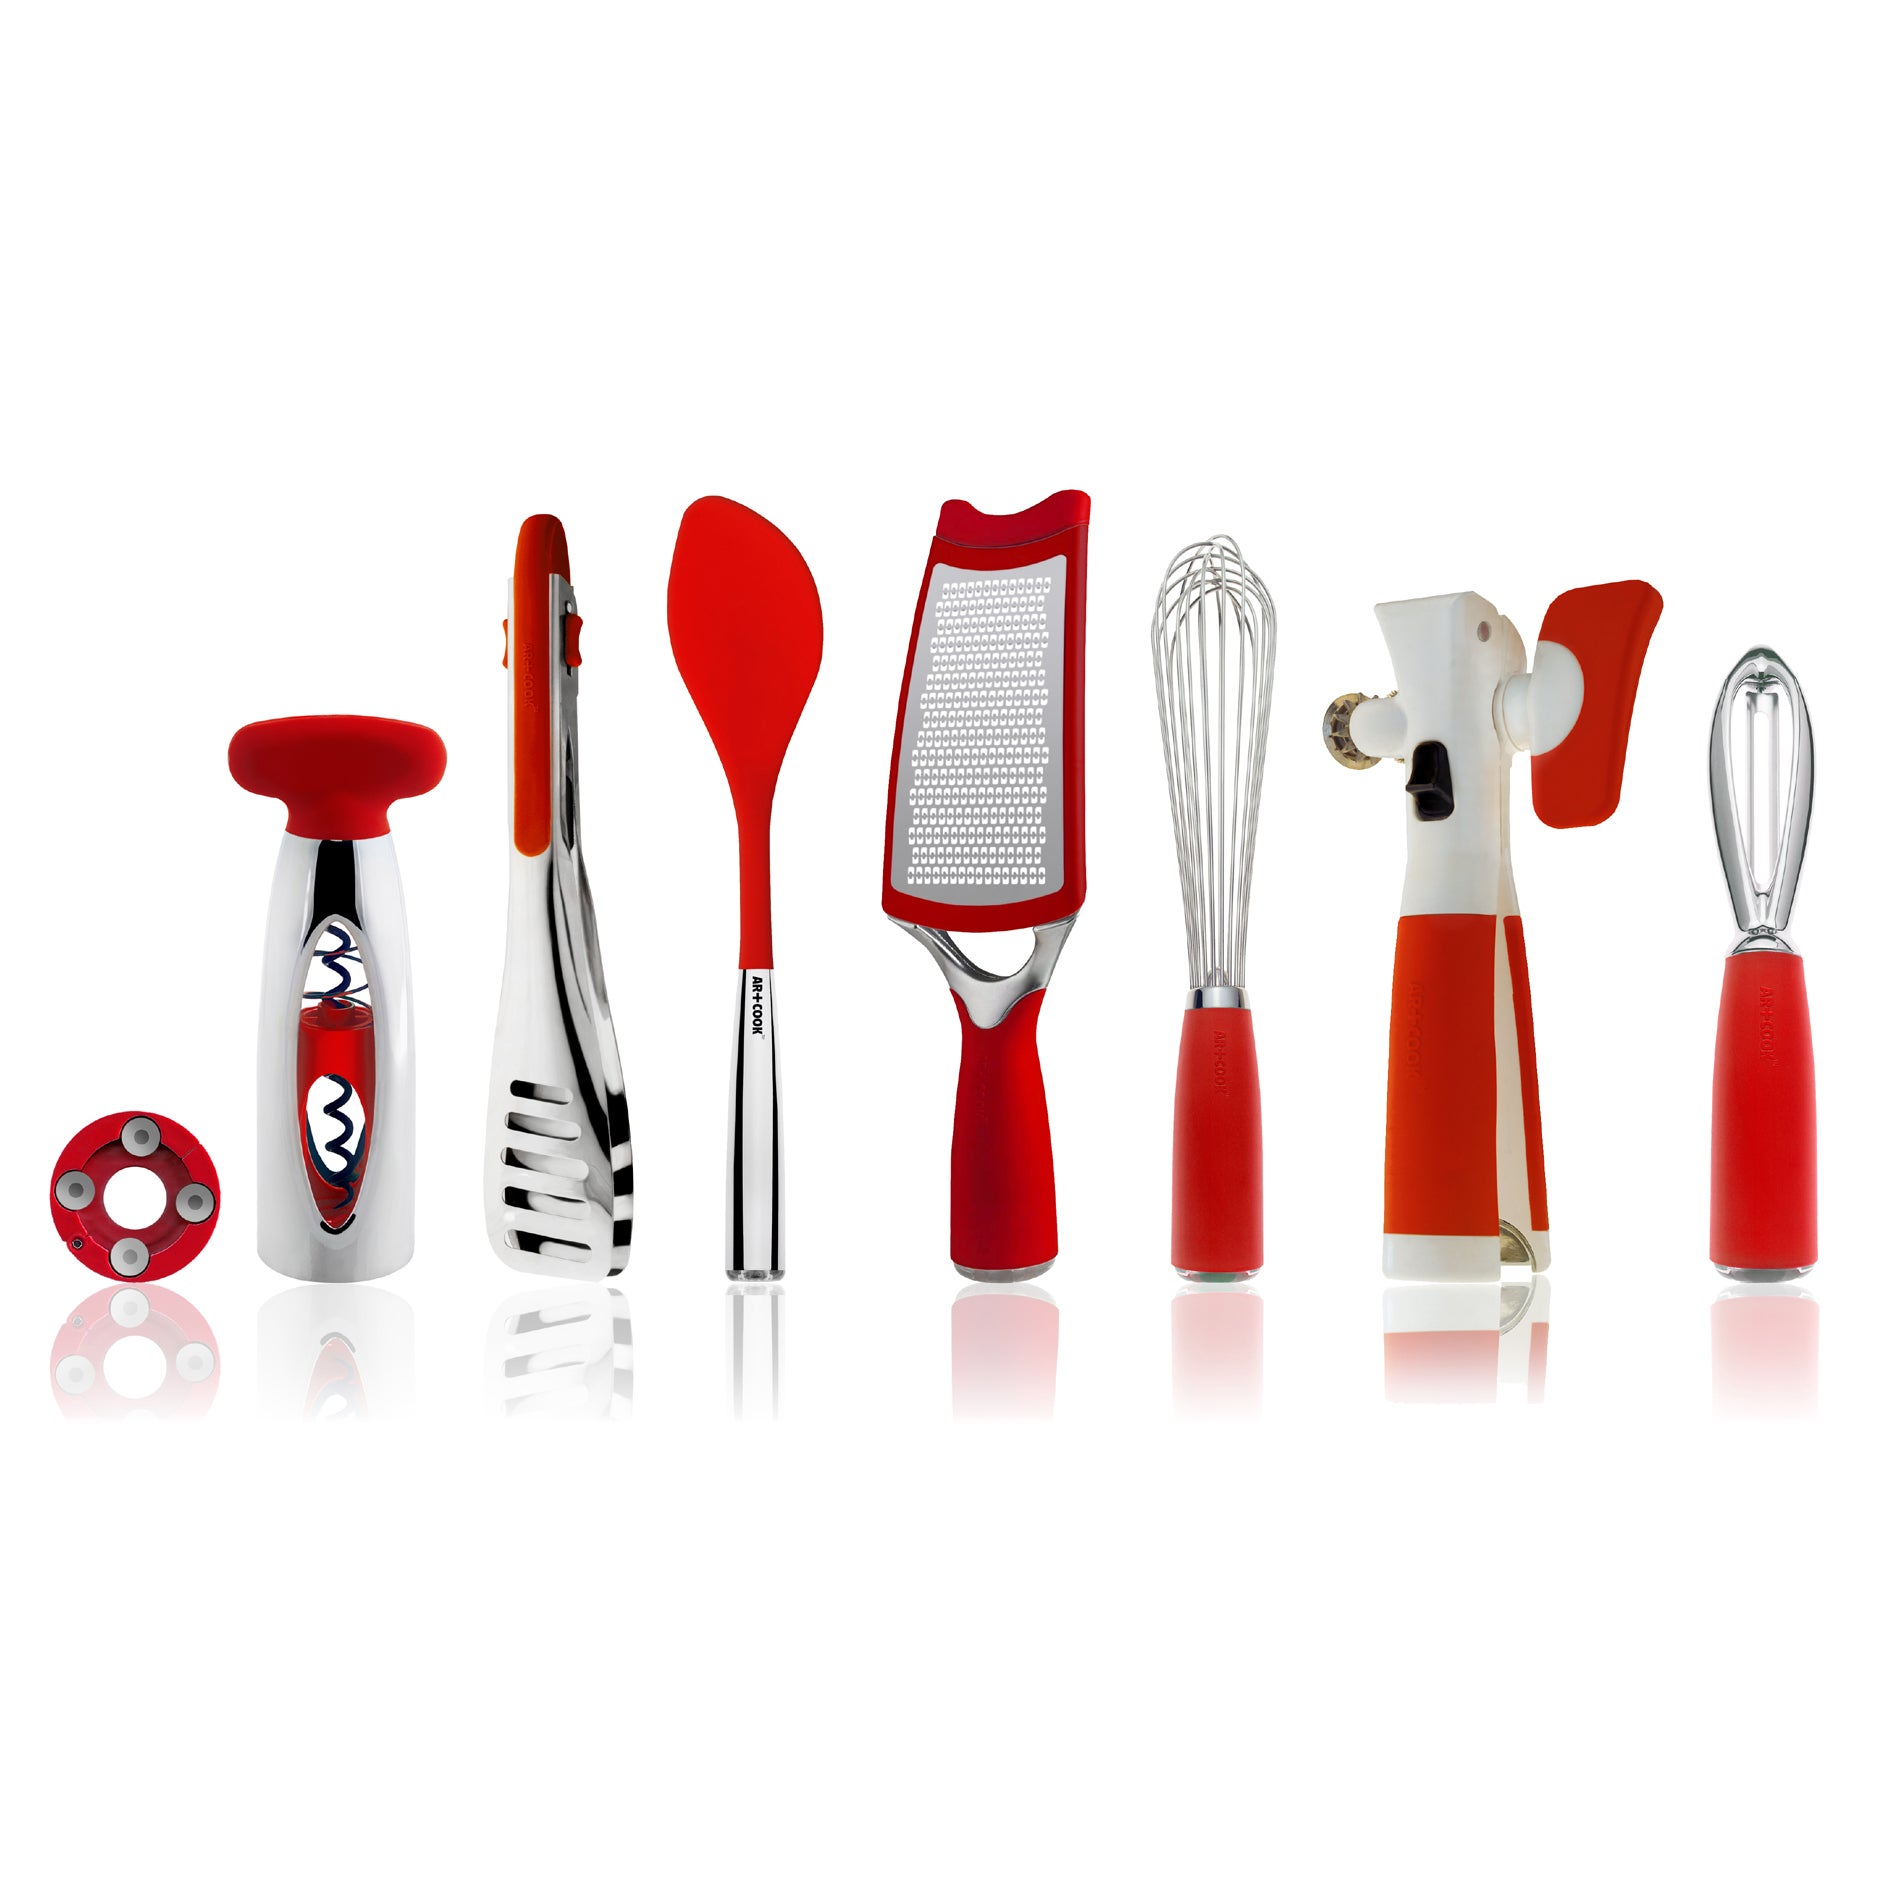 Art and cook red 8 piece kitchen tool set free shipping for Kitchen set red